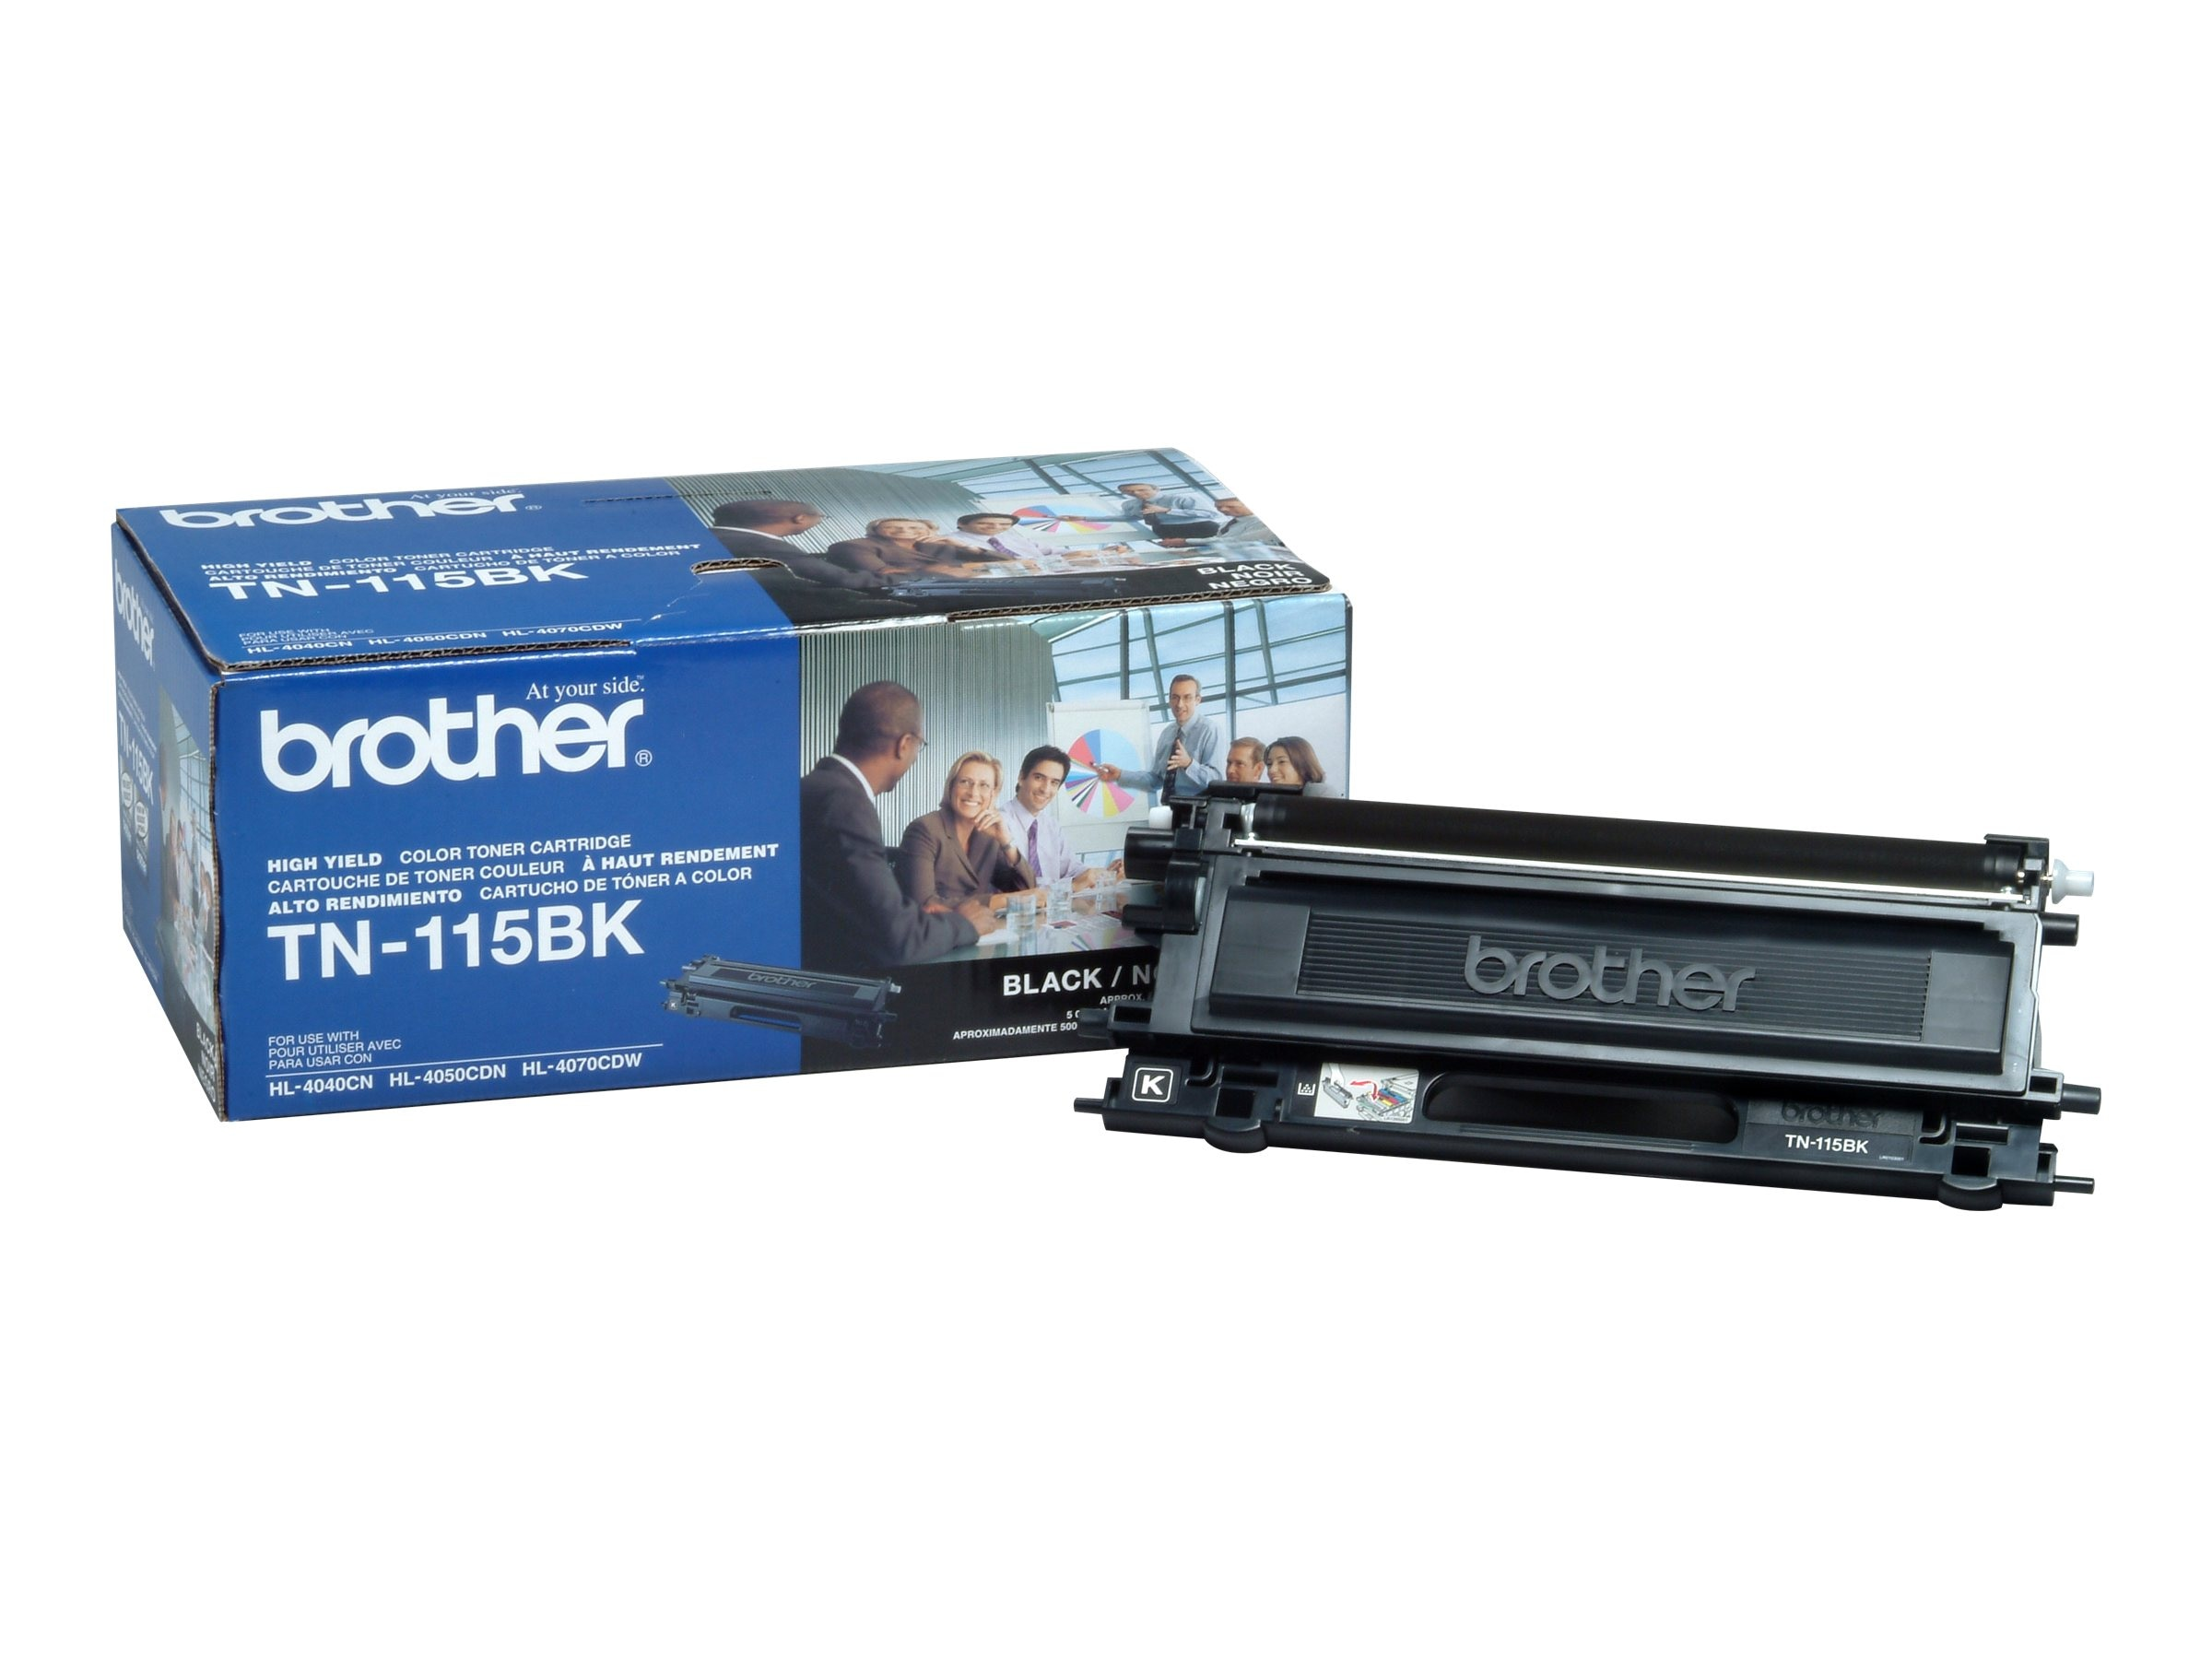 Brother Black High Yield Toner Cartridge for Brother HL-4040CN & MFC-9440CN, TN115BK, 7790439, Toner and Imaging Components